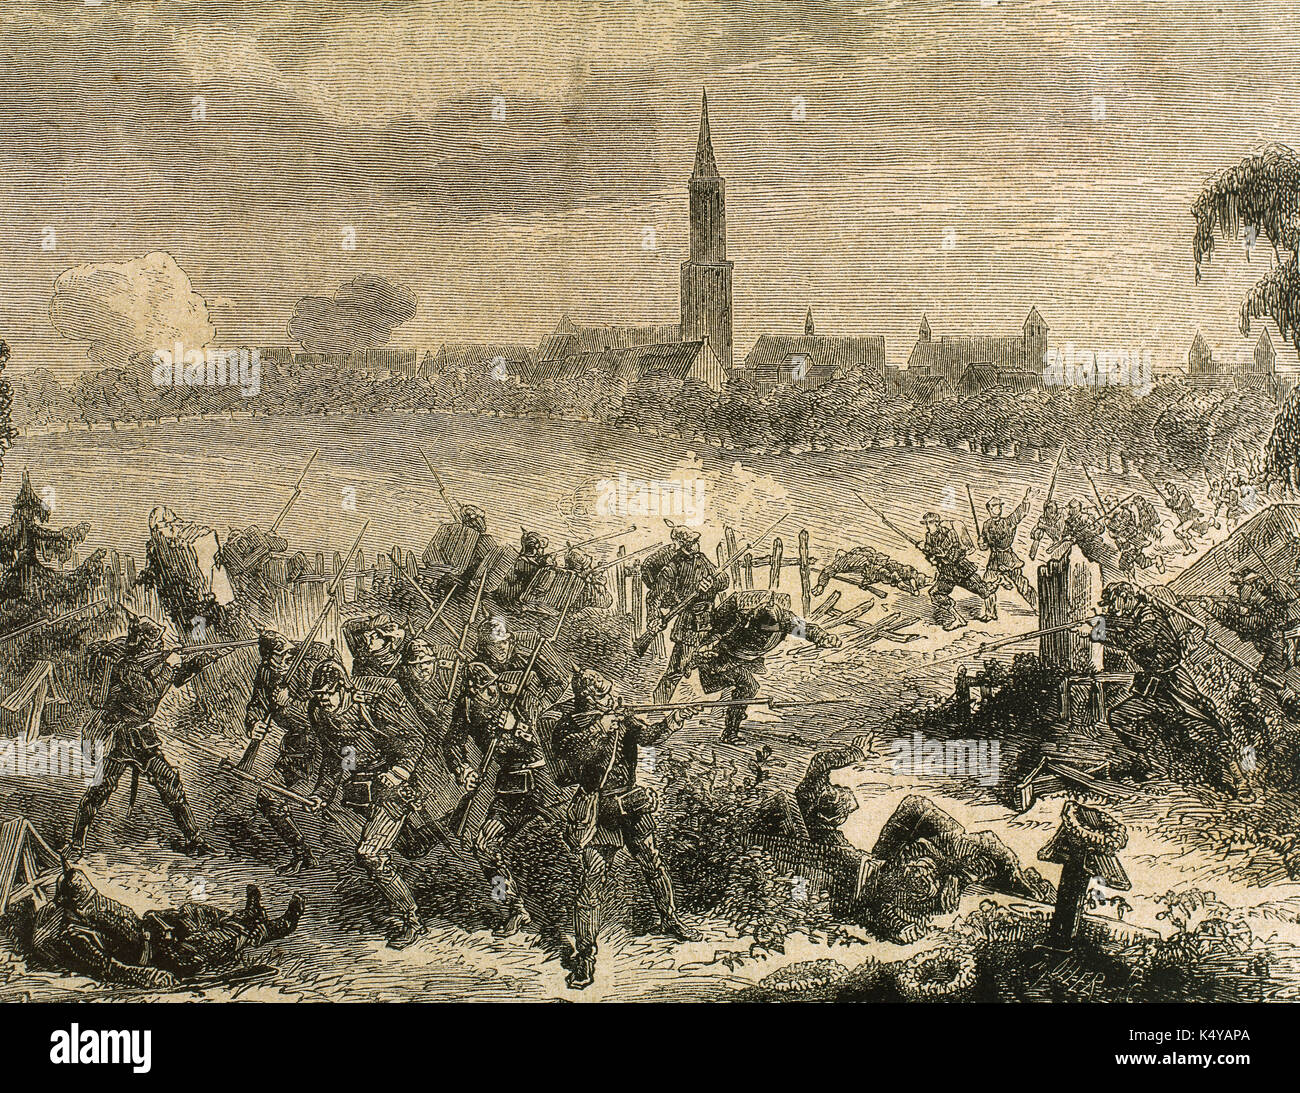 Franco-Prussian War (1870-1871). Combat of the garrison of Strasbourg with the Prussians camped in the cemetery of Saint Elena. Engraving. 'La Ilustracion Espanola y Americana', 1879. - Stock Image